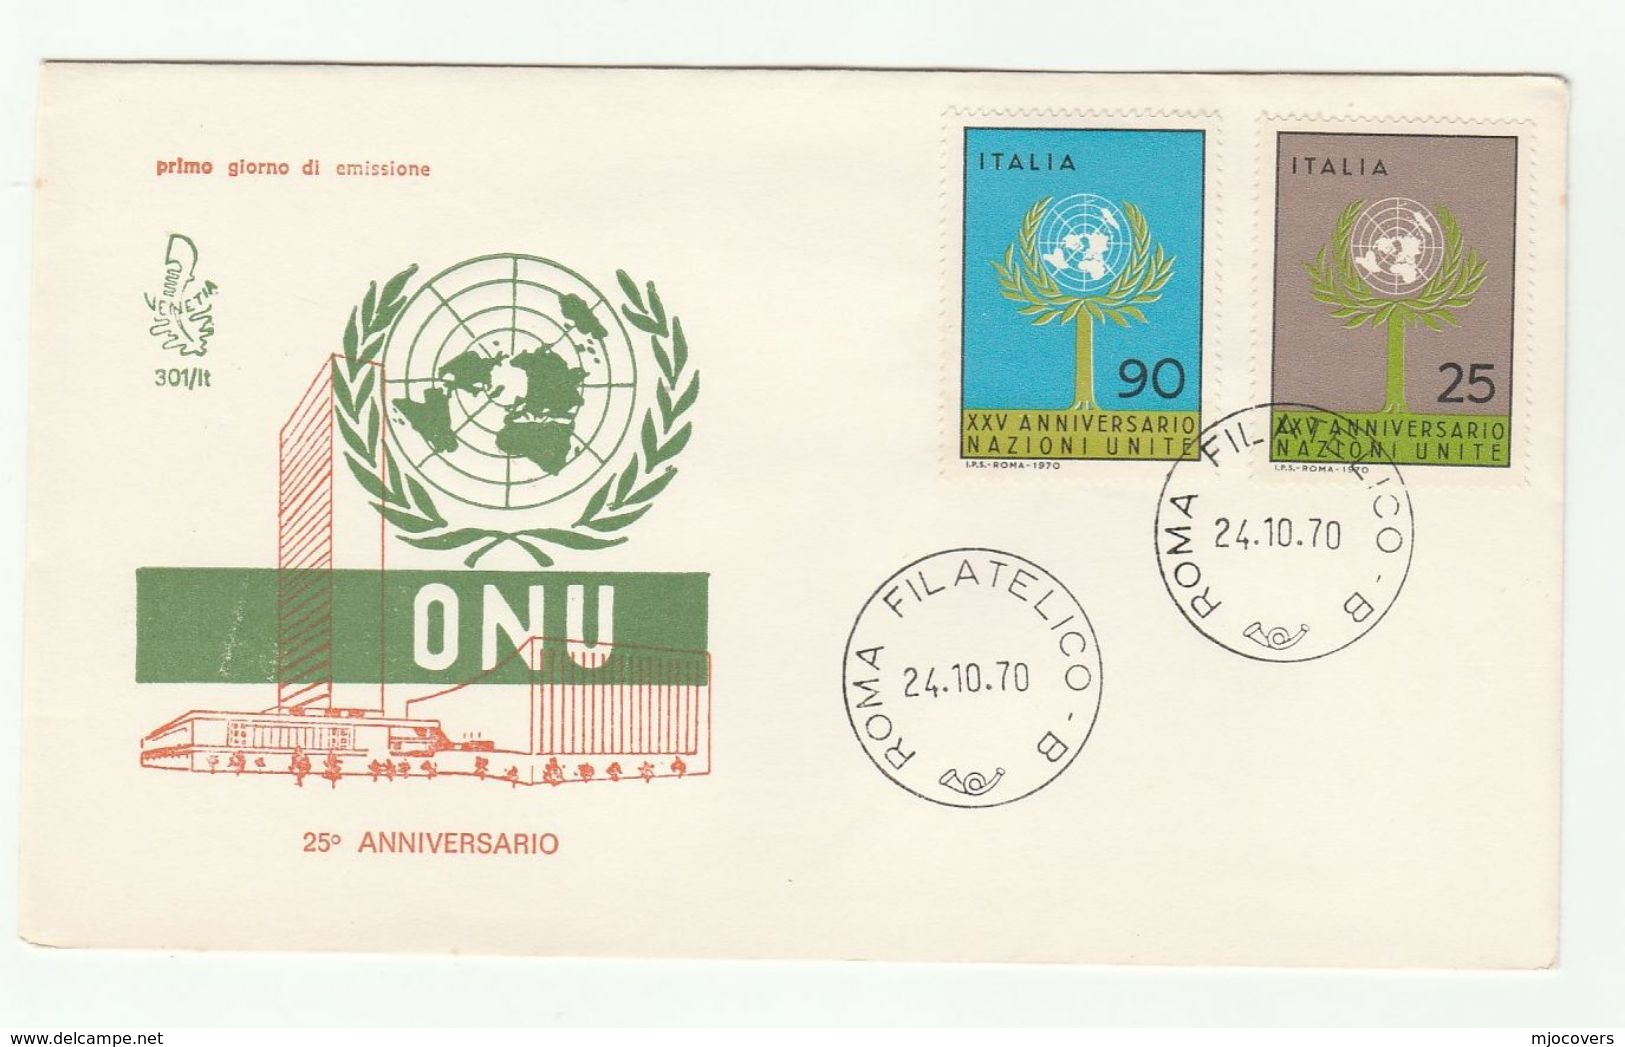 1970 ITALY FDC United Nations UN  Cover Stamps - UNO